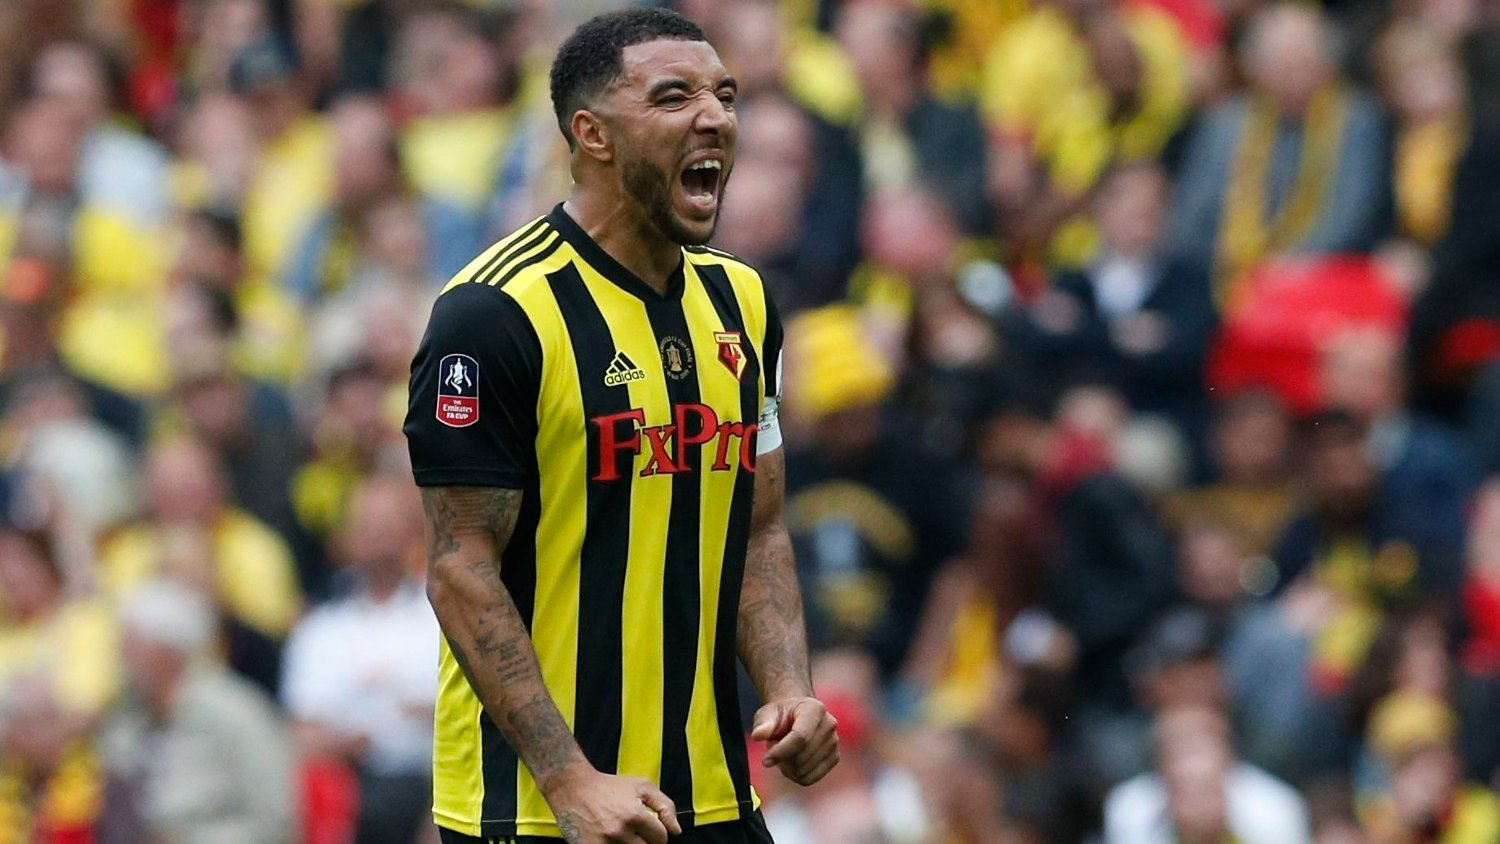 Angry Troy Deeney of Watford shouts out during the FA Cup Final match at Wembley Stadium, London. Picture date: 18th May 2019. Picture credit should read: Darren Staples/Sportimage via PA Images